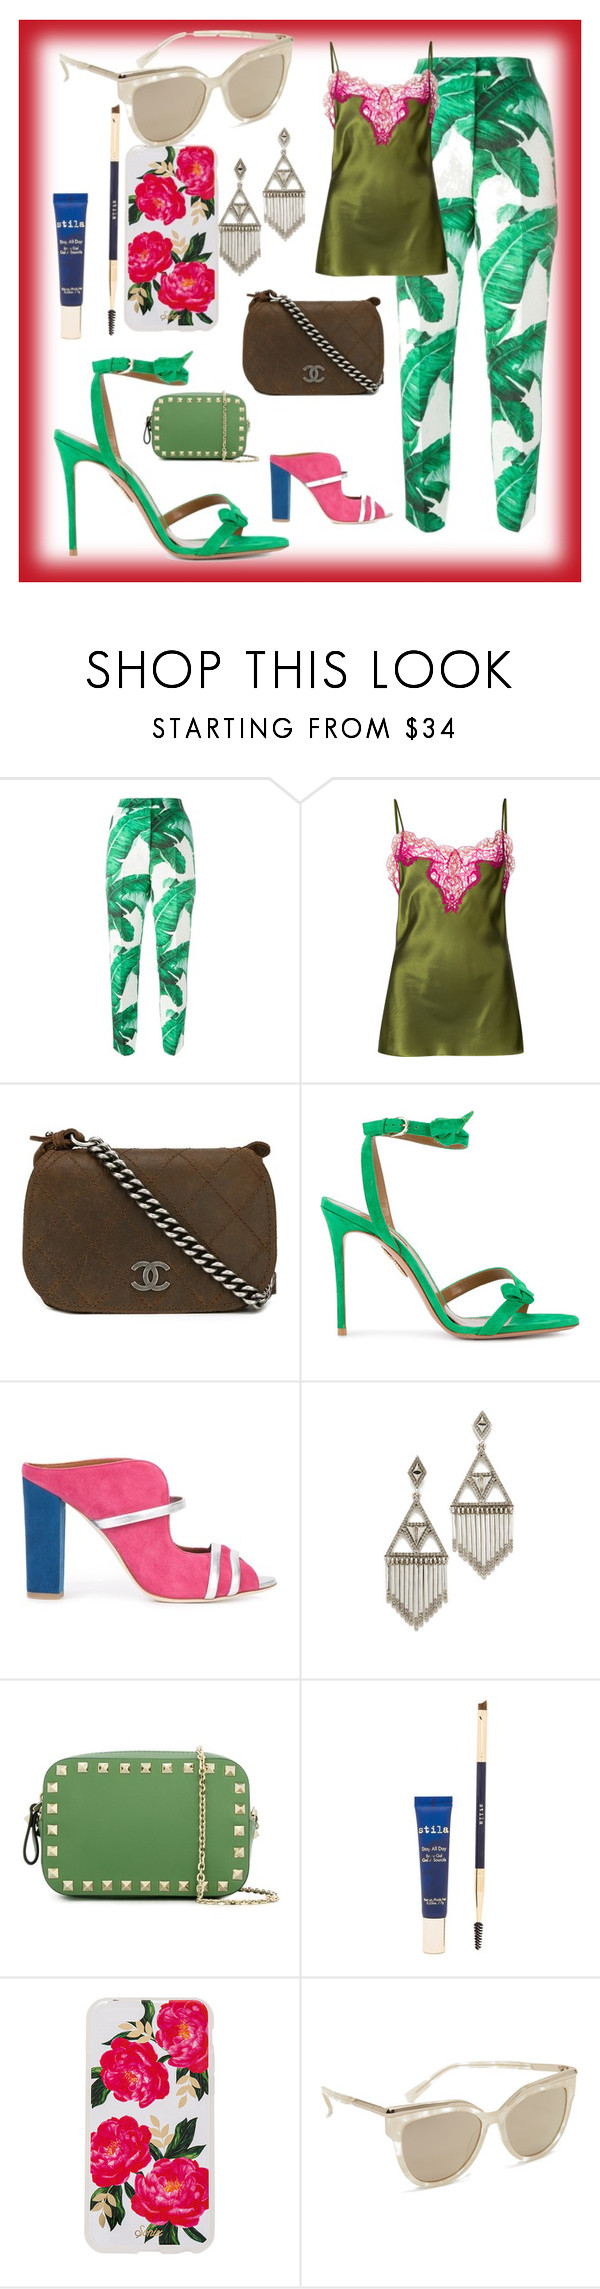 """My Small Wardrobe"" by mkrish ❤ liked on Polyvore featuring Dolce&Gabbana, Marques'Almeida, Chanel, Aquazzura, Malone Souliers, House of Harlow 1960, Valentino, Stila, Sonix and MCM"